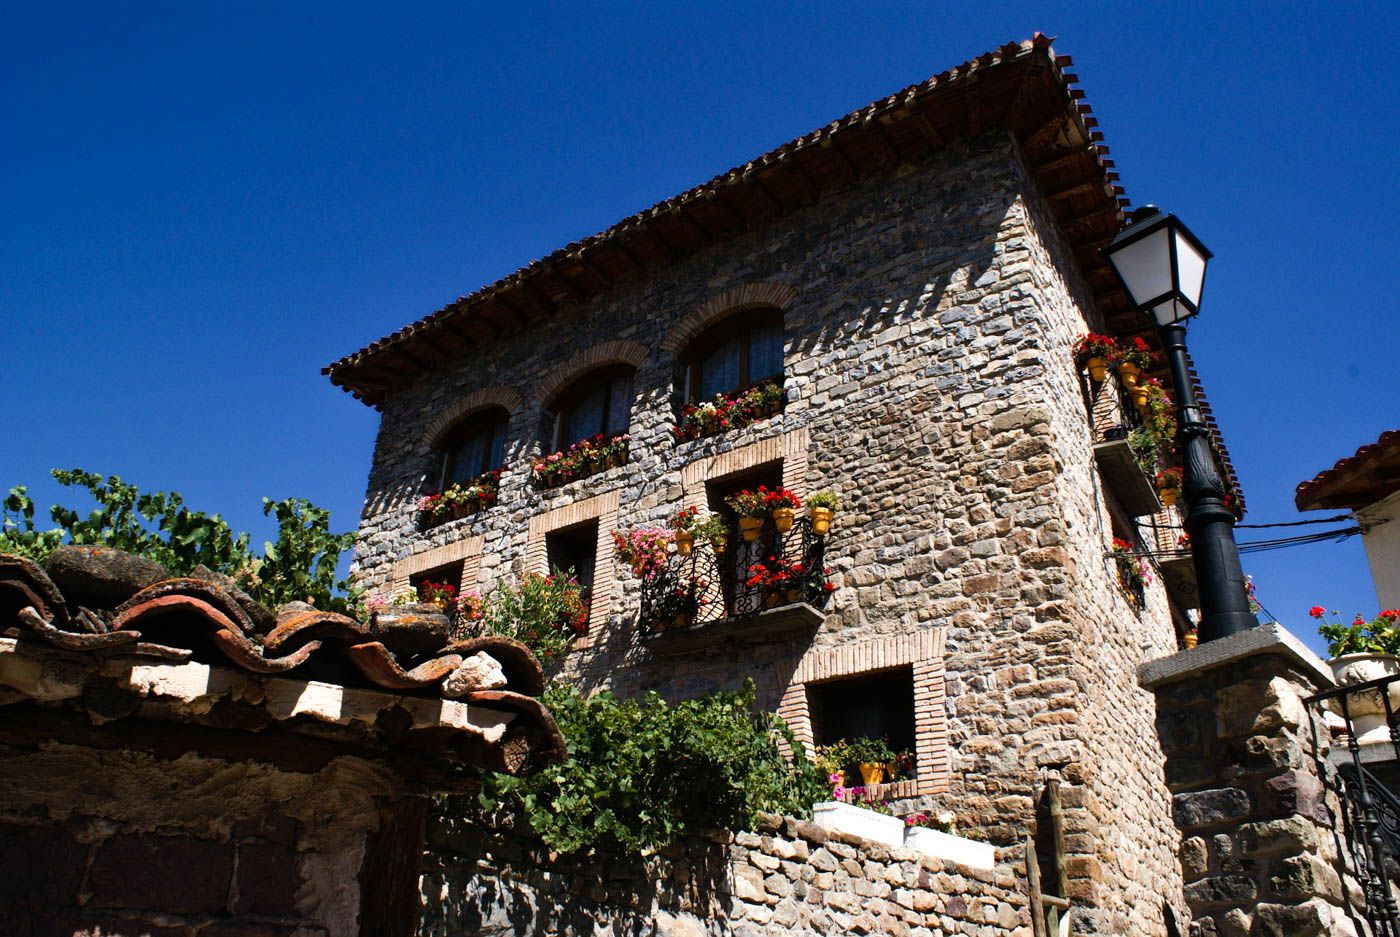 Vacation Couple Blog La Rioja Travel Cost Average Price Of A Vacation To La